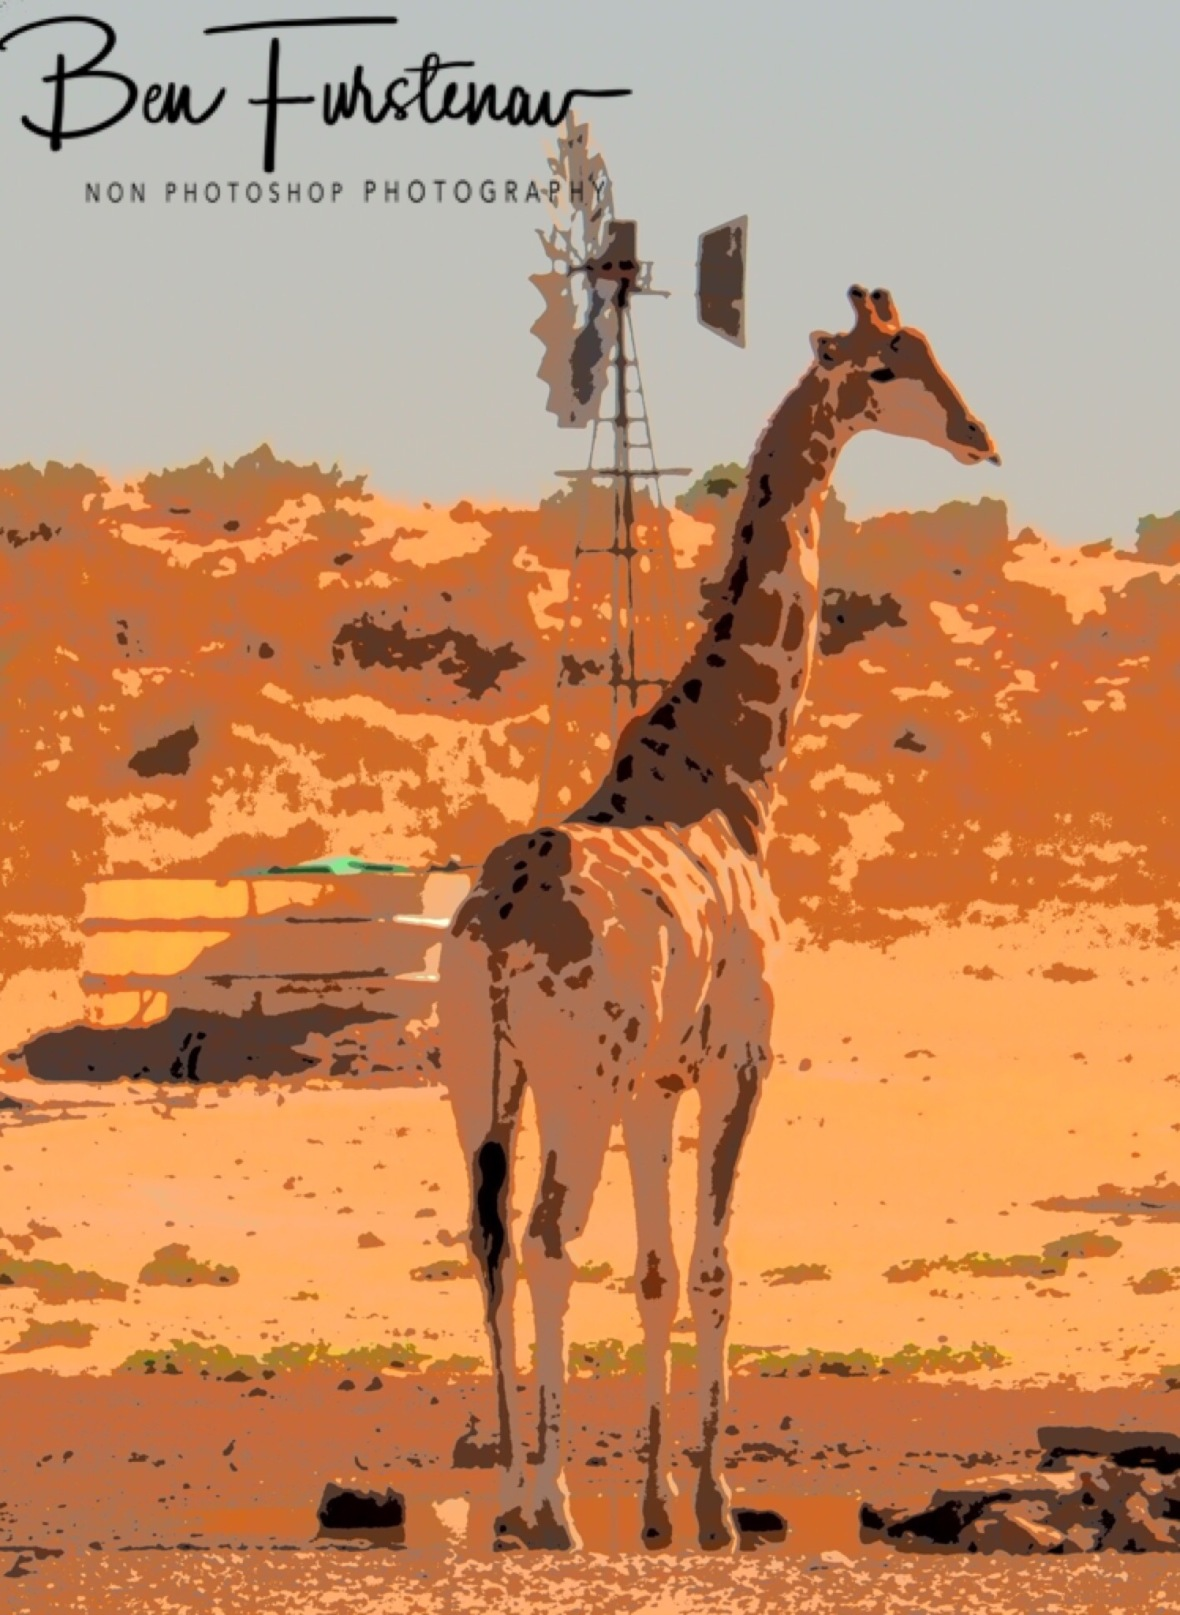 A giraffe on early morning patrol through Kgalagadi Transfrontier Park